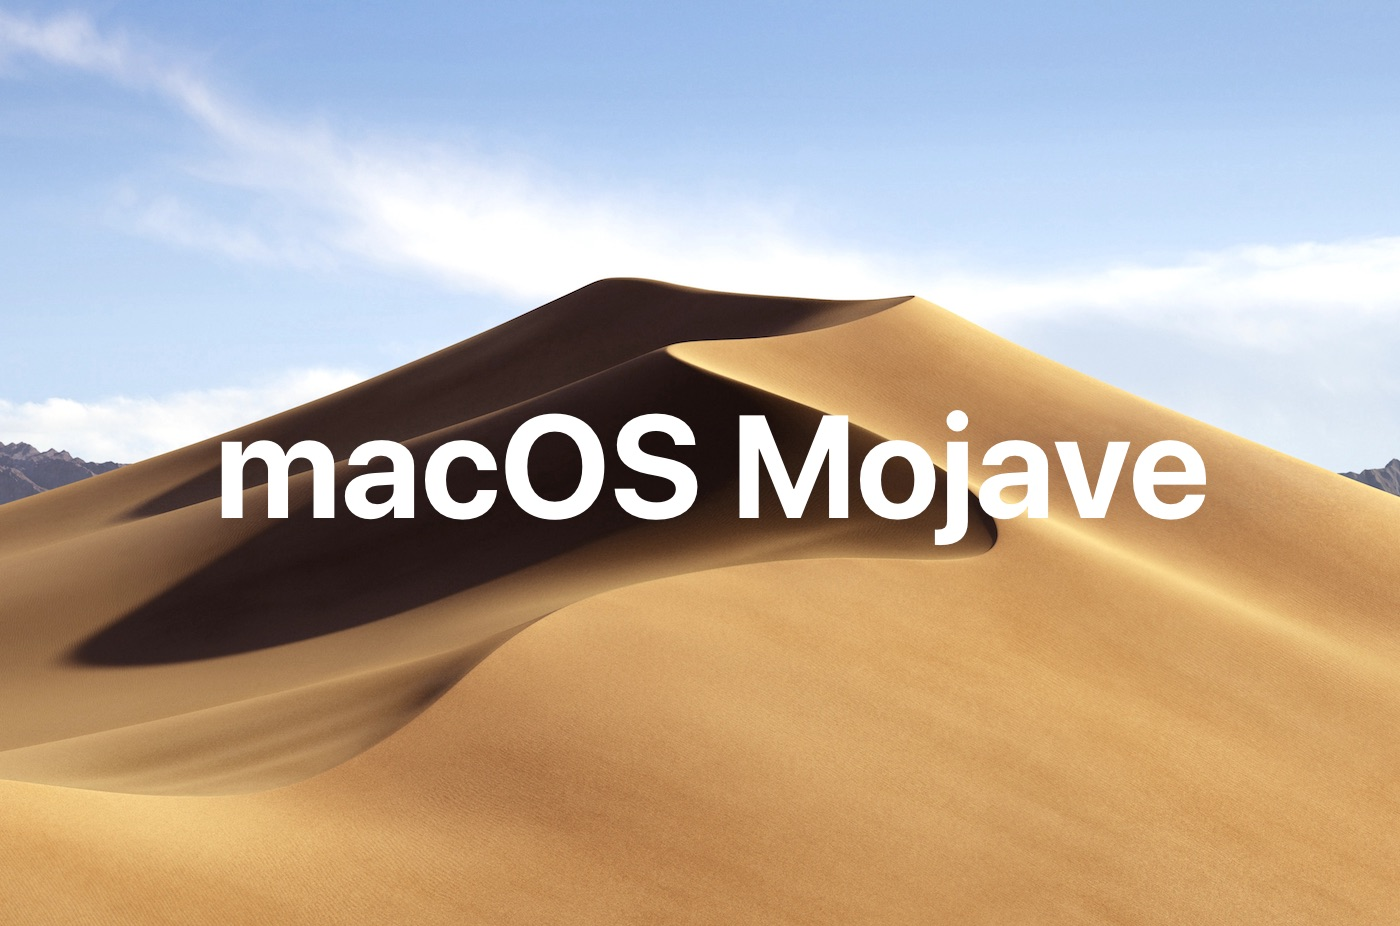 New MacOS Mojave software update